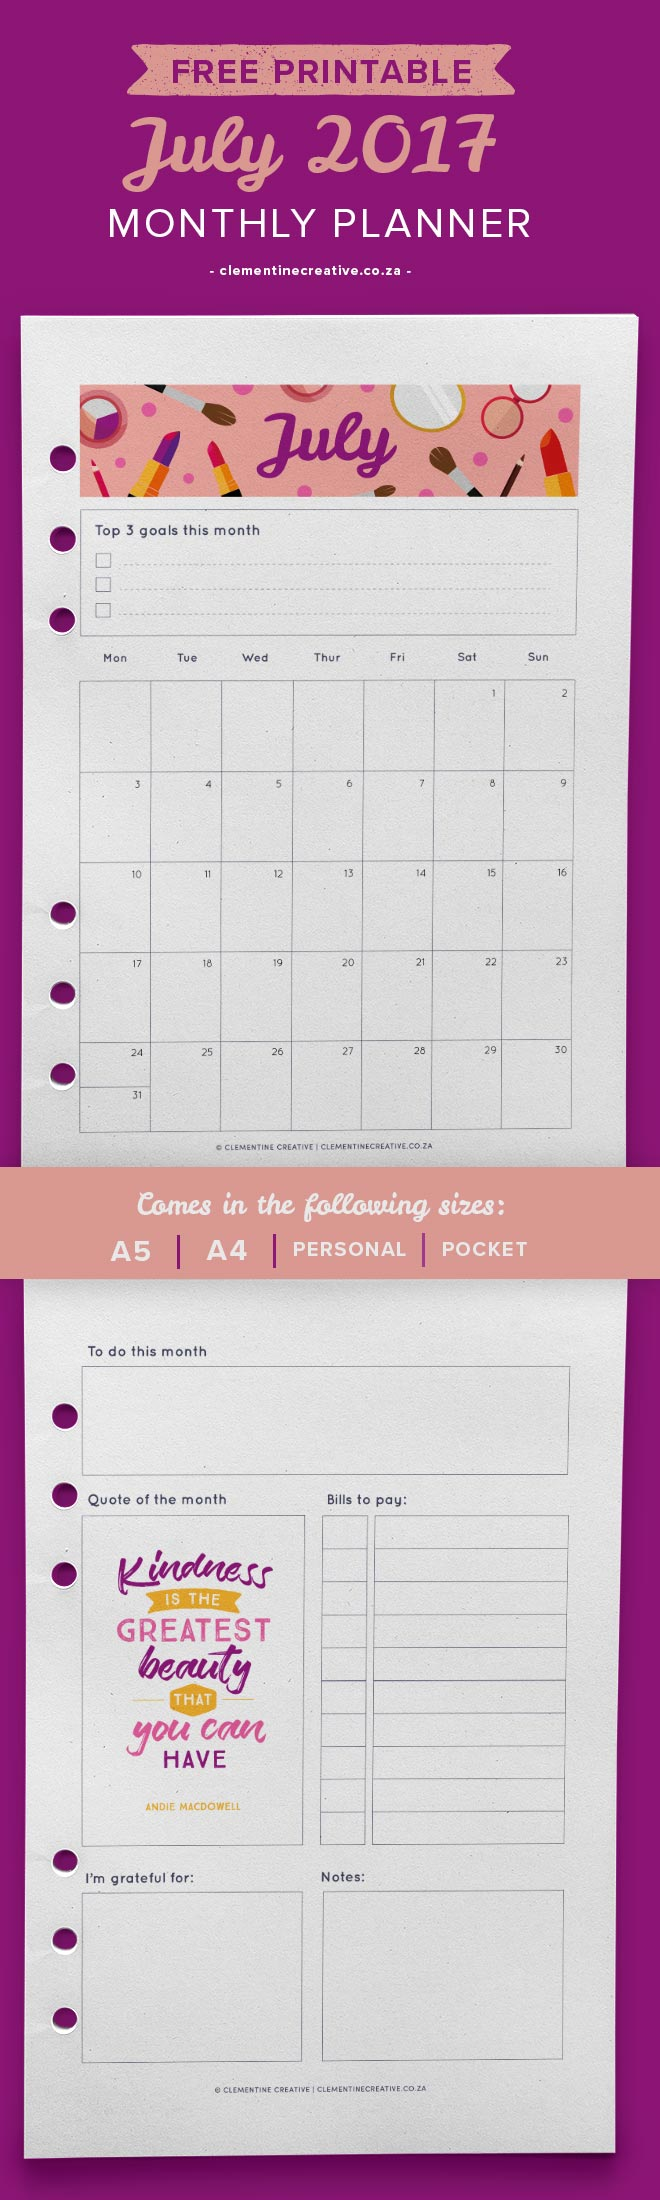 july 2017 free printable monthly planner - clementine creative